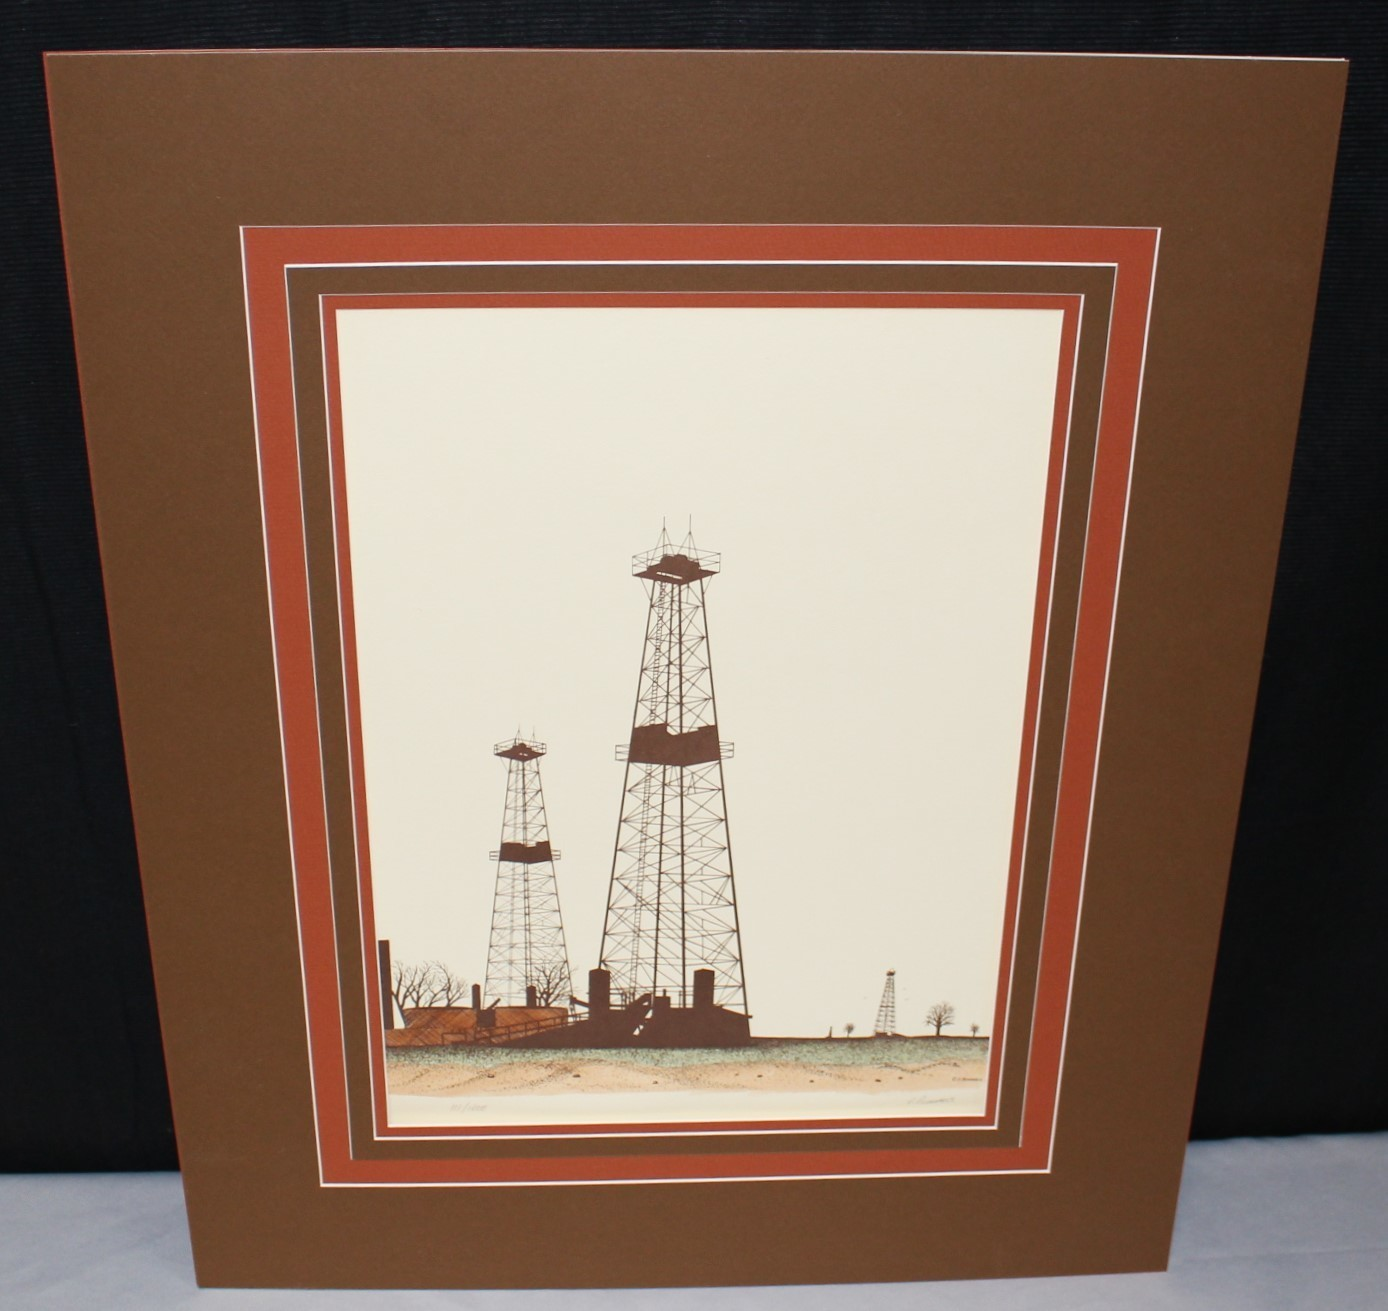 R. Bumpass Oil Derrick Well Pump Petroleum Color Lithograph Signed & Numbered